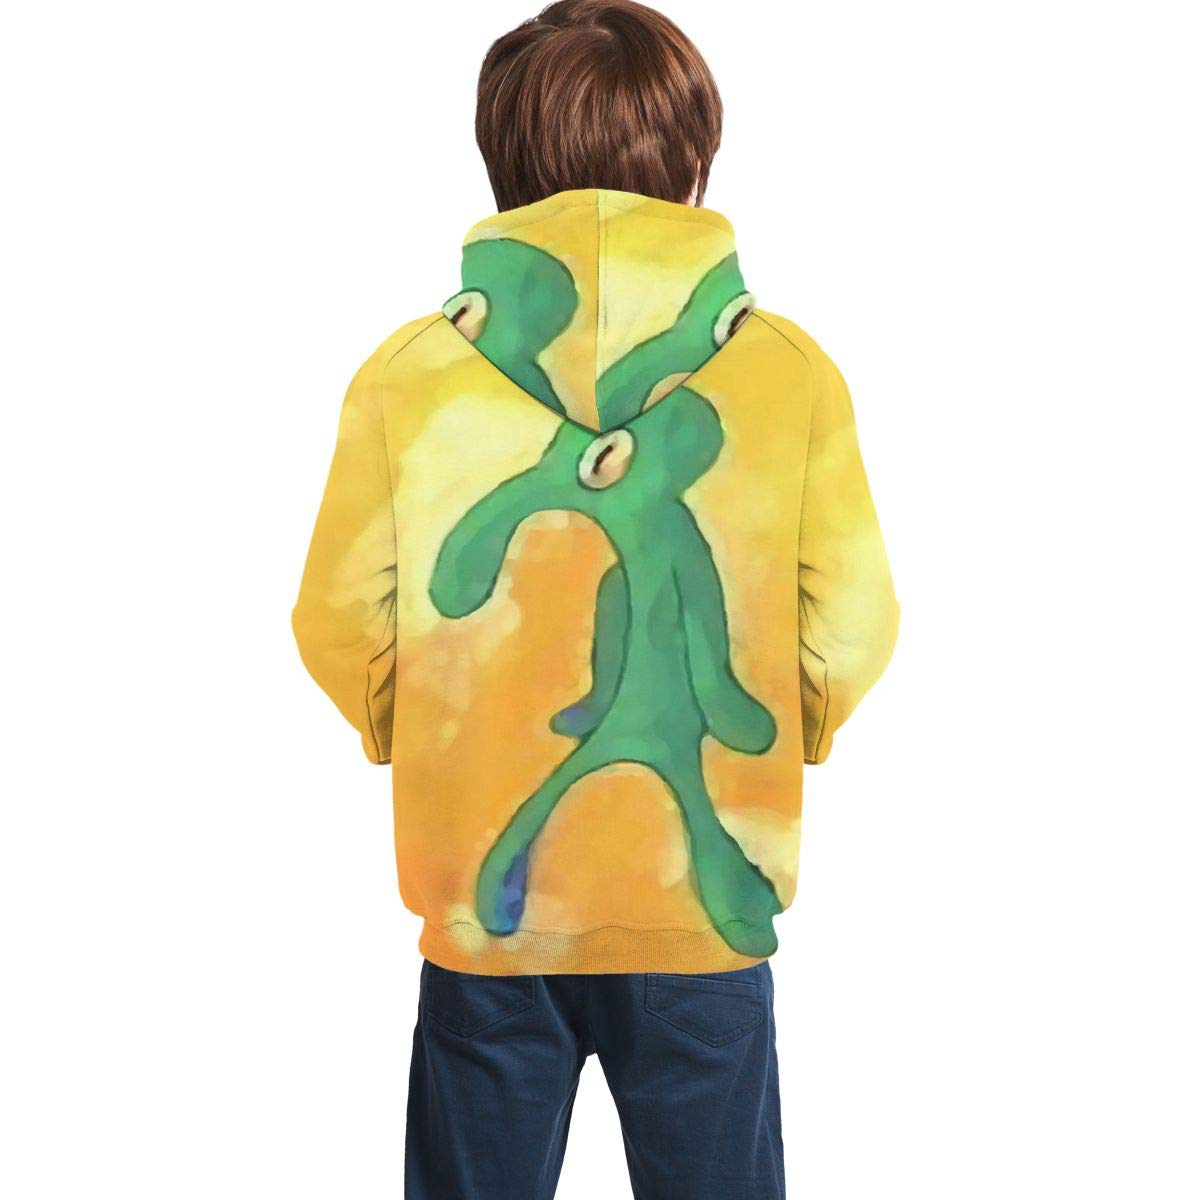 Cccccccocccc Old Bold and Brash Squidward Teen Boys//Girls 3D Print Casual Pullover Hoodies